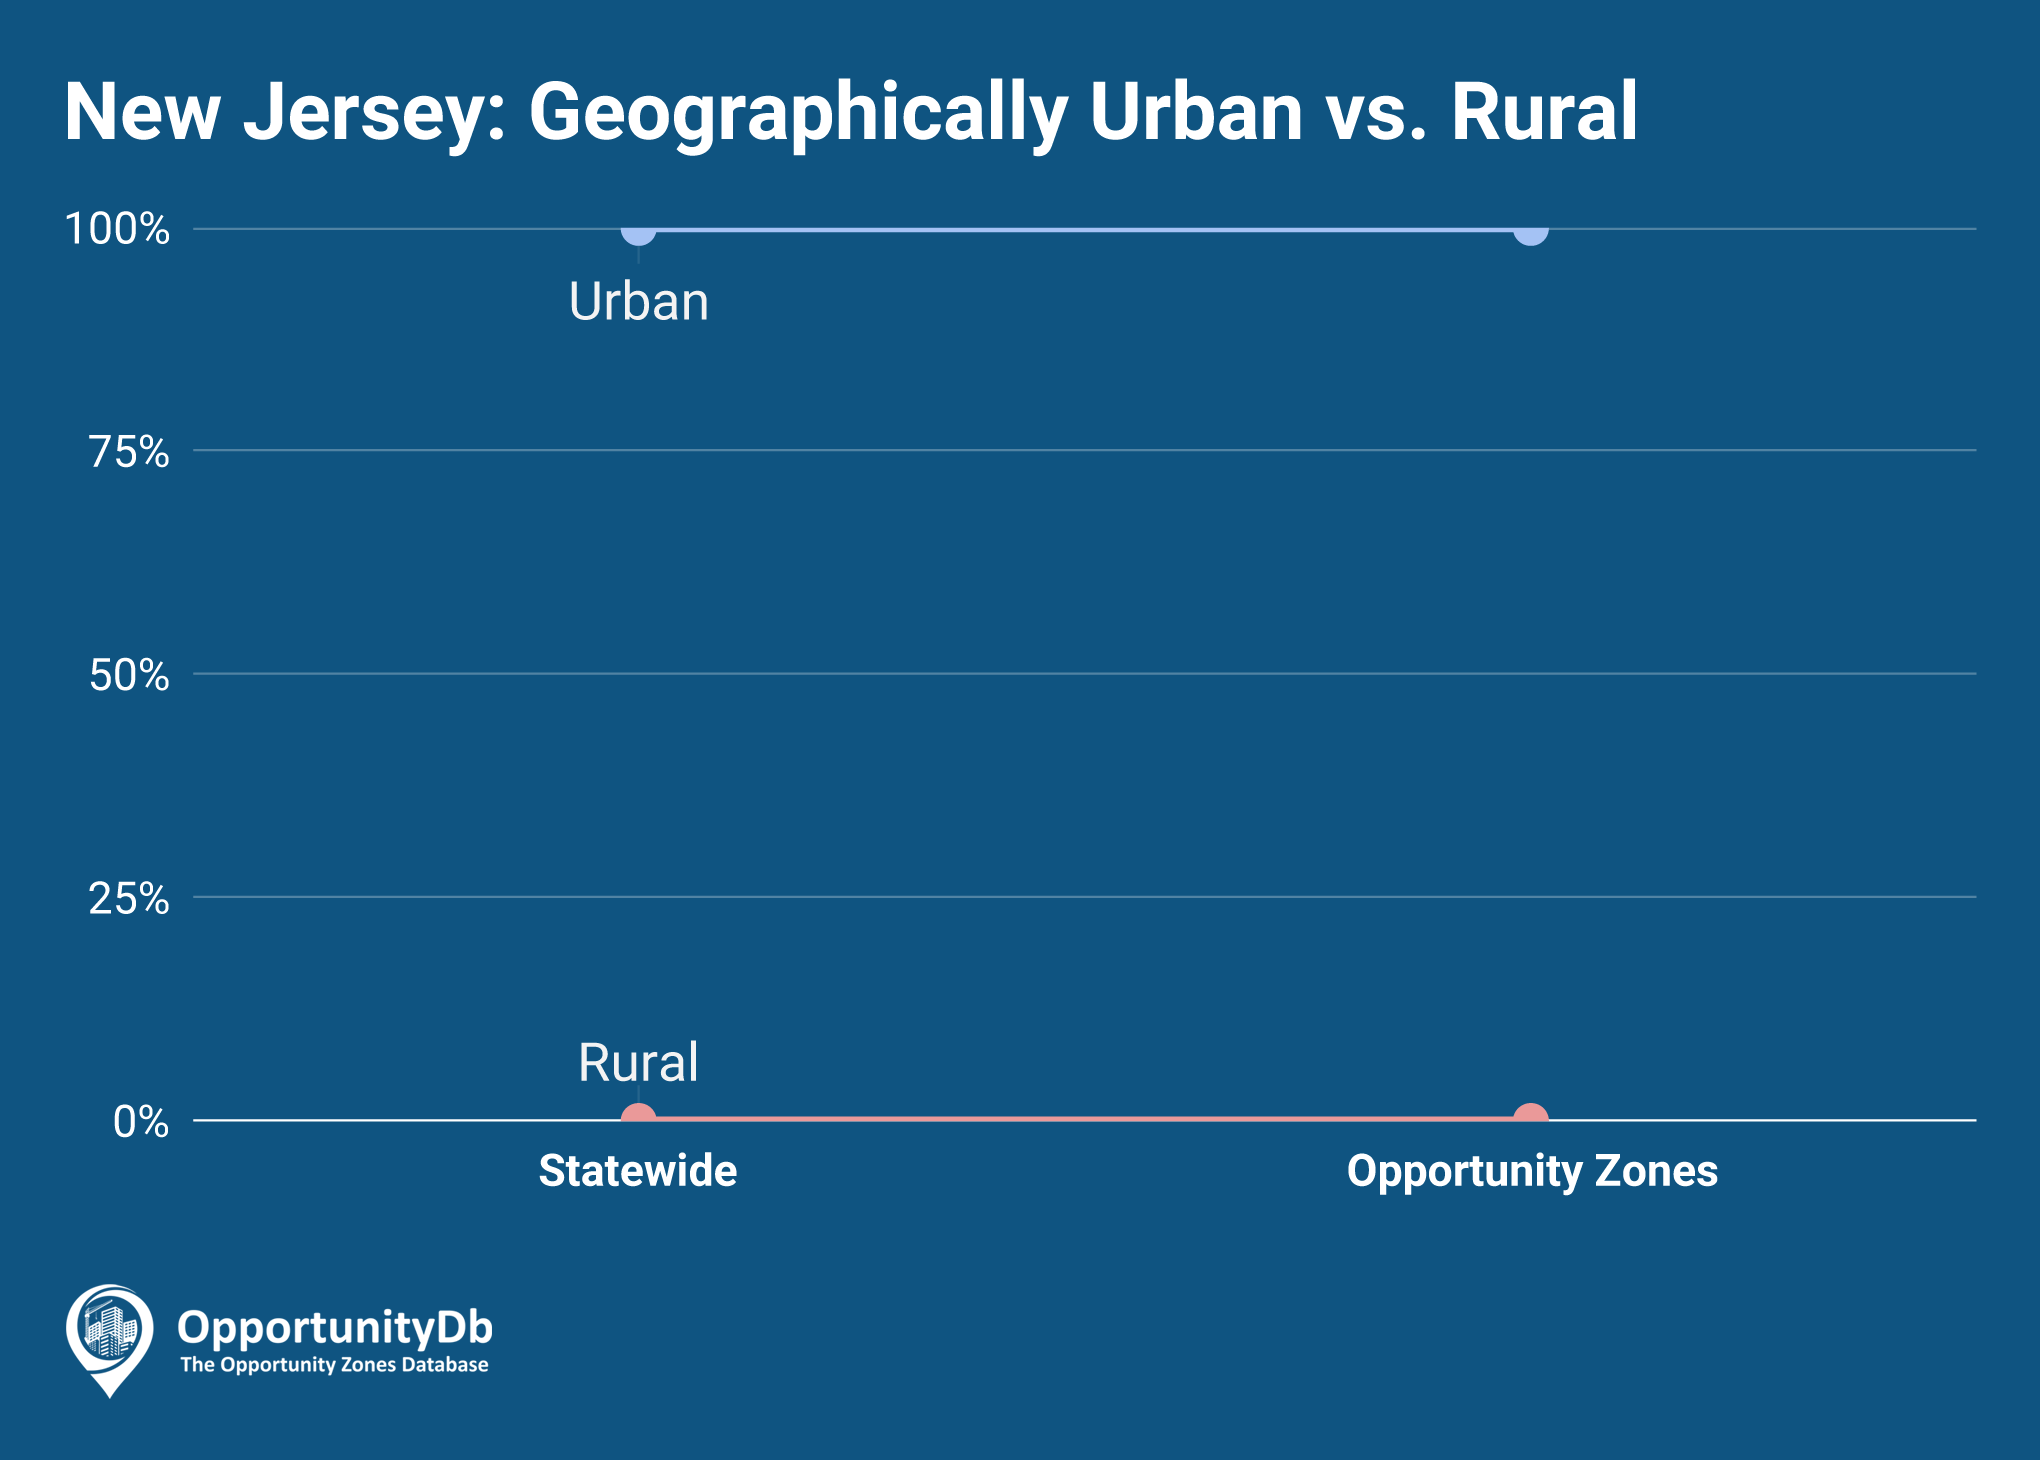 Urban vs. Rural in New Jersey Opportunity Zones